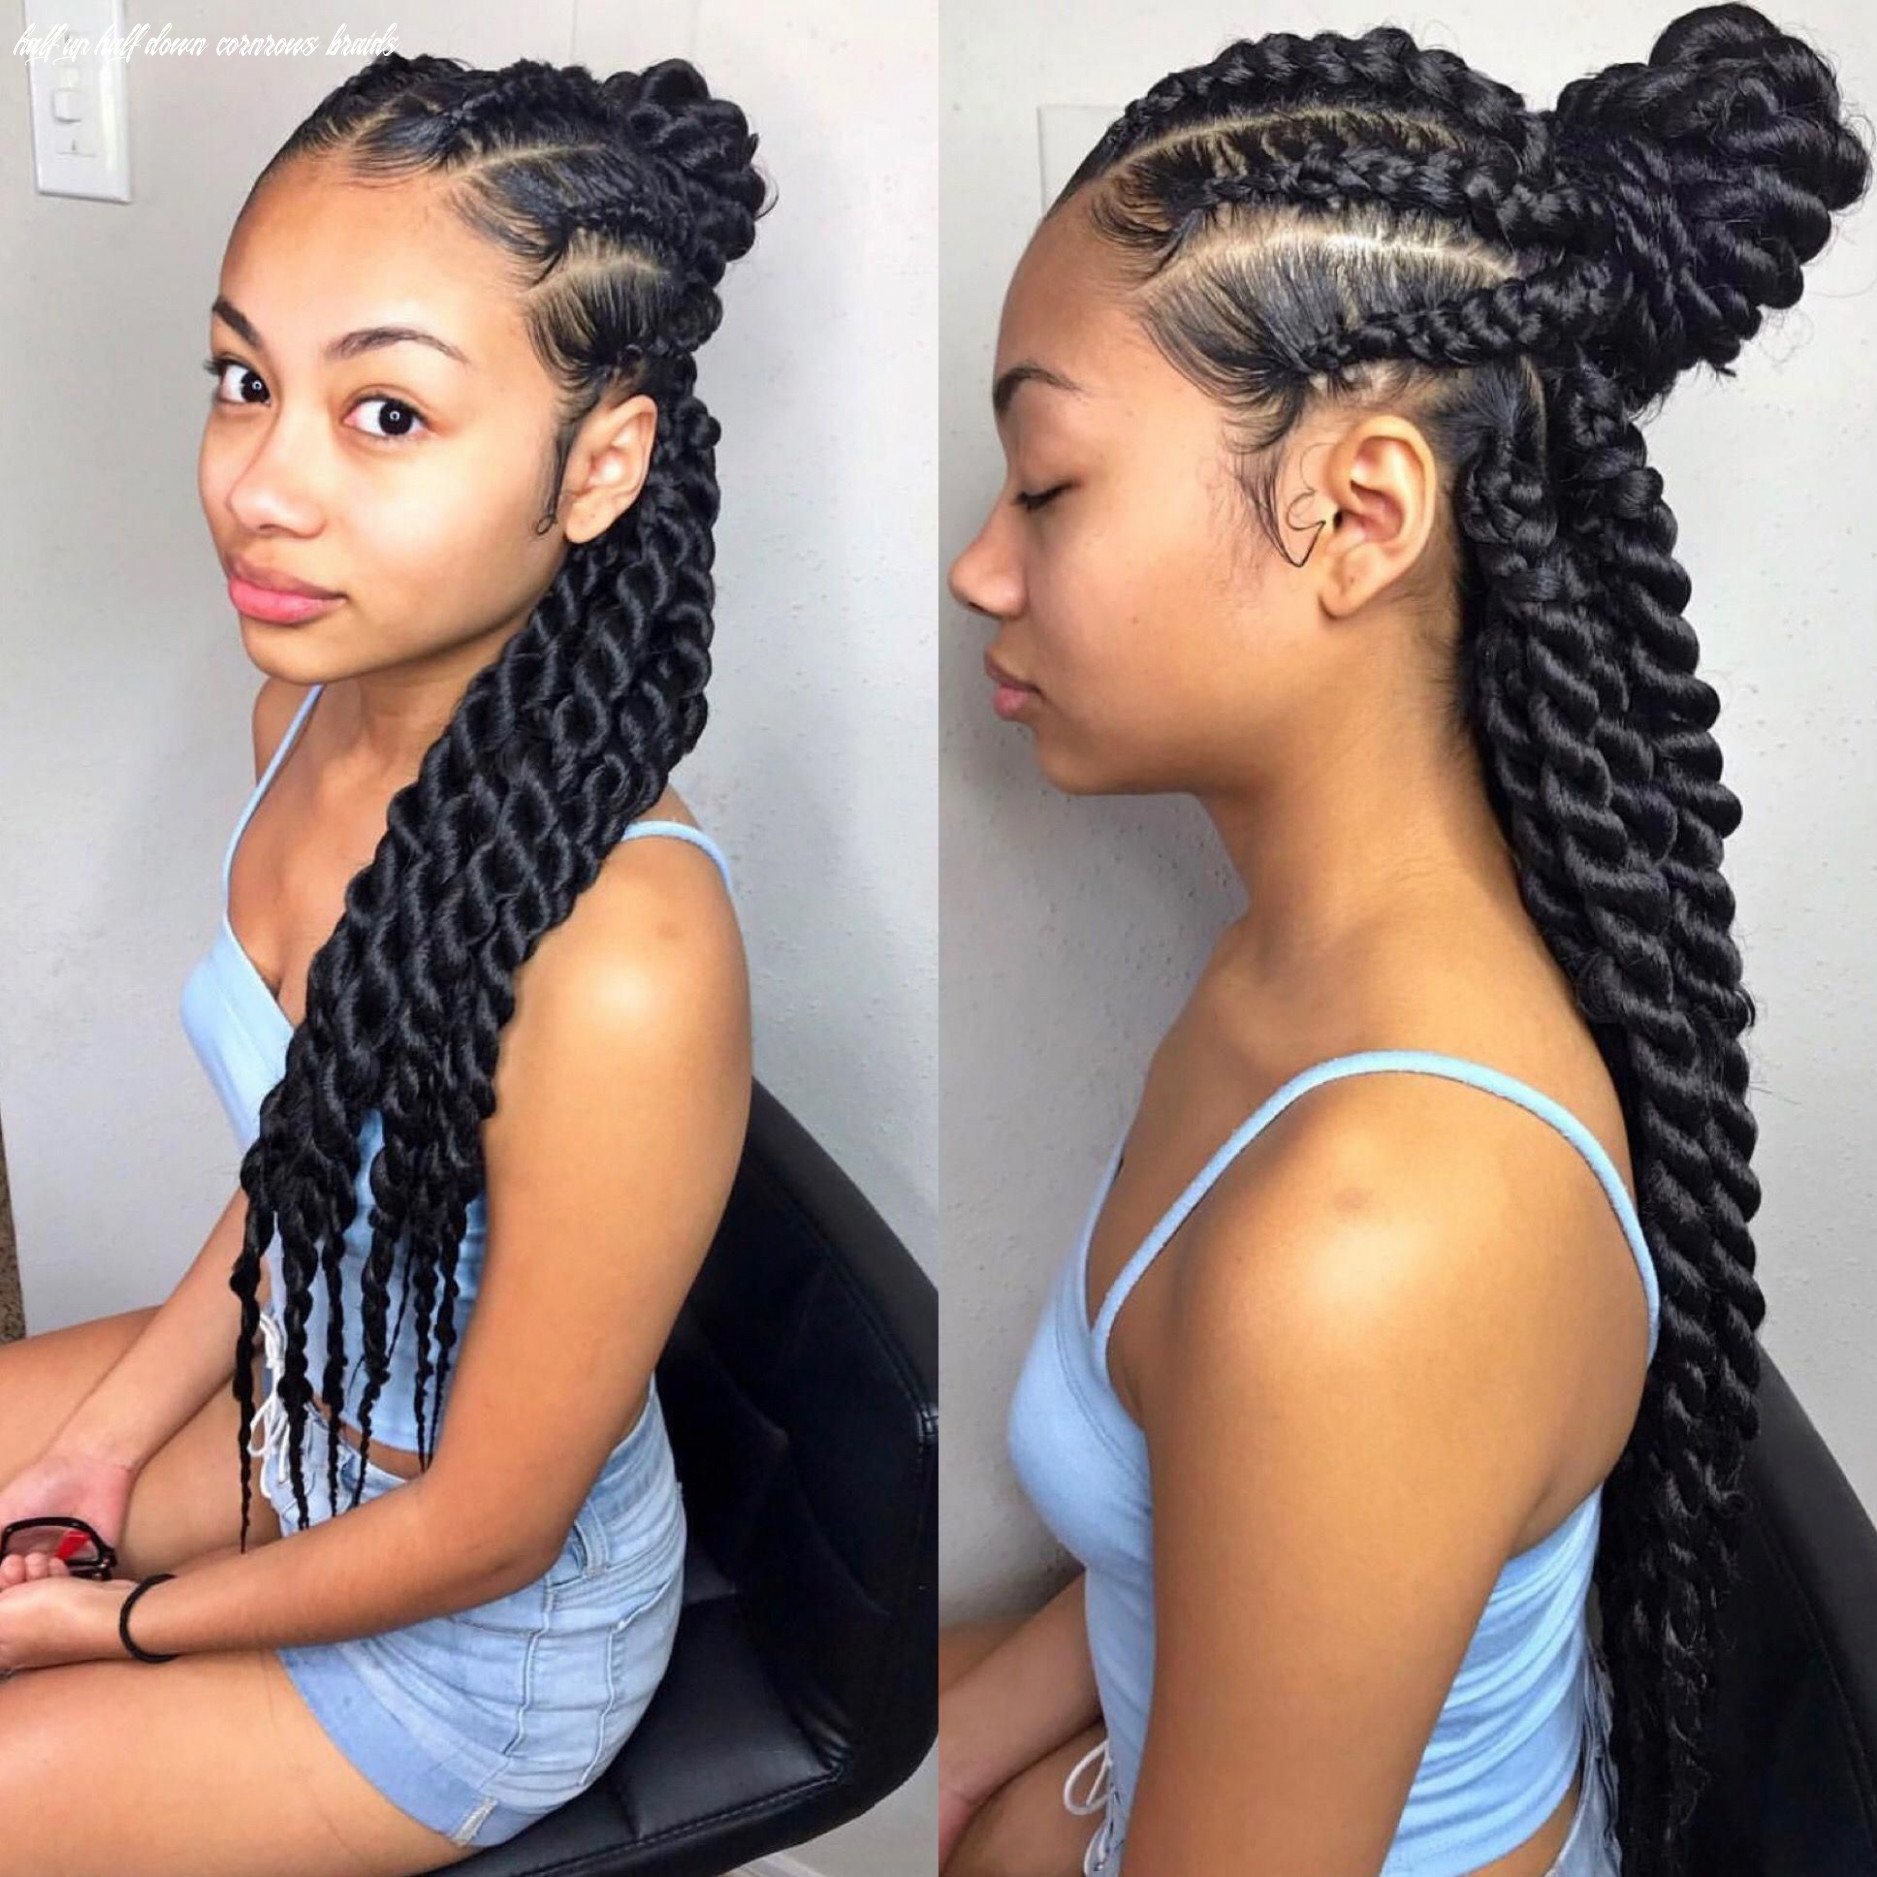 Half up/half down twists ✨ by @/trapprinzess on ig